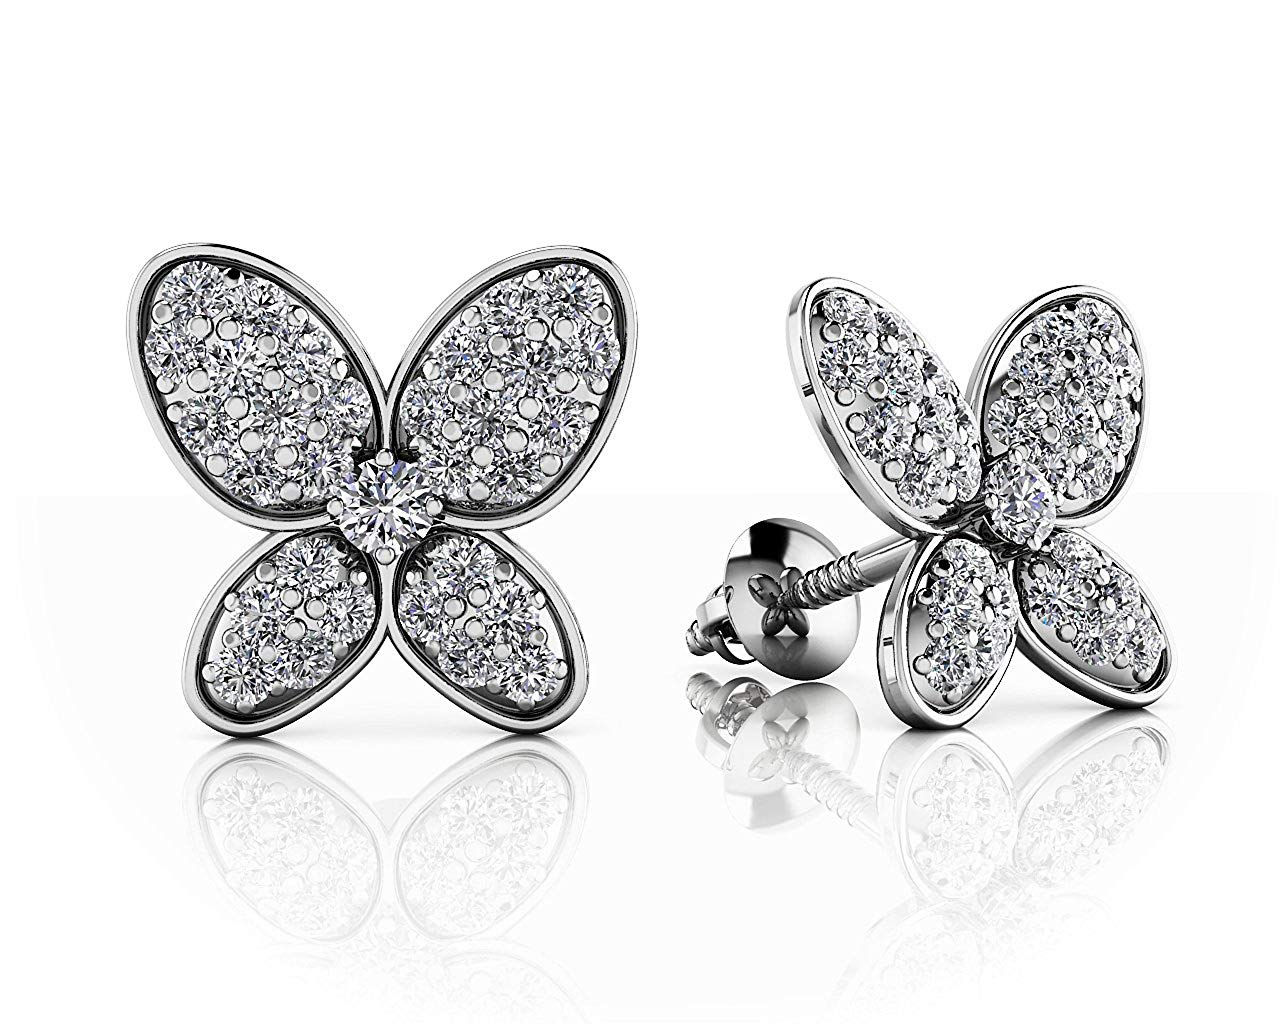 3541a4dbc Get Quotations · Silvercz Jewels 14K White Gold Fn Pave Set 0.51 Ct Sim Diamond  Butterfly Stud Earrings For